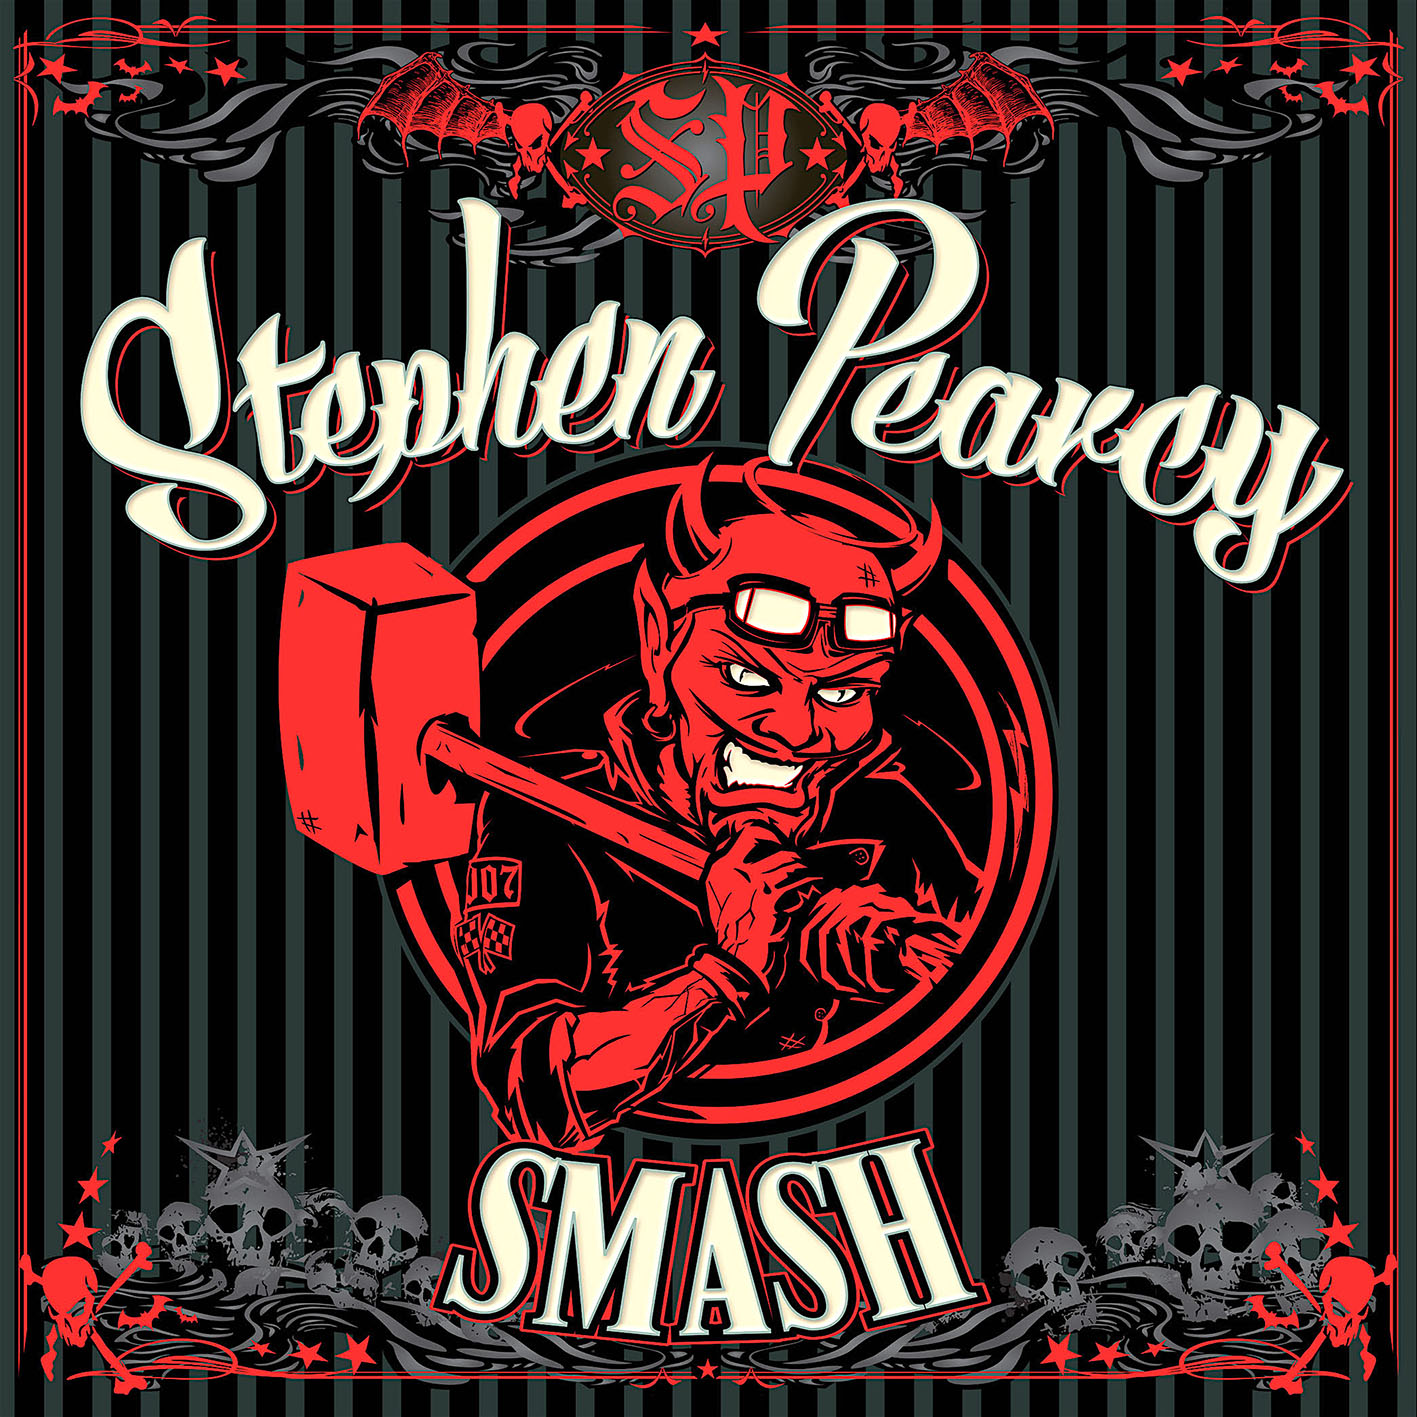 Interview: Stephen Pearcy -  His New Solo Album and Ratt plans